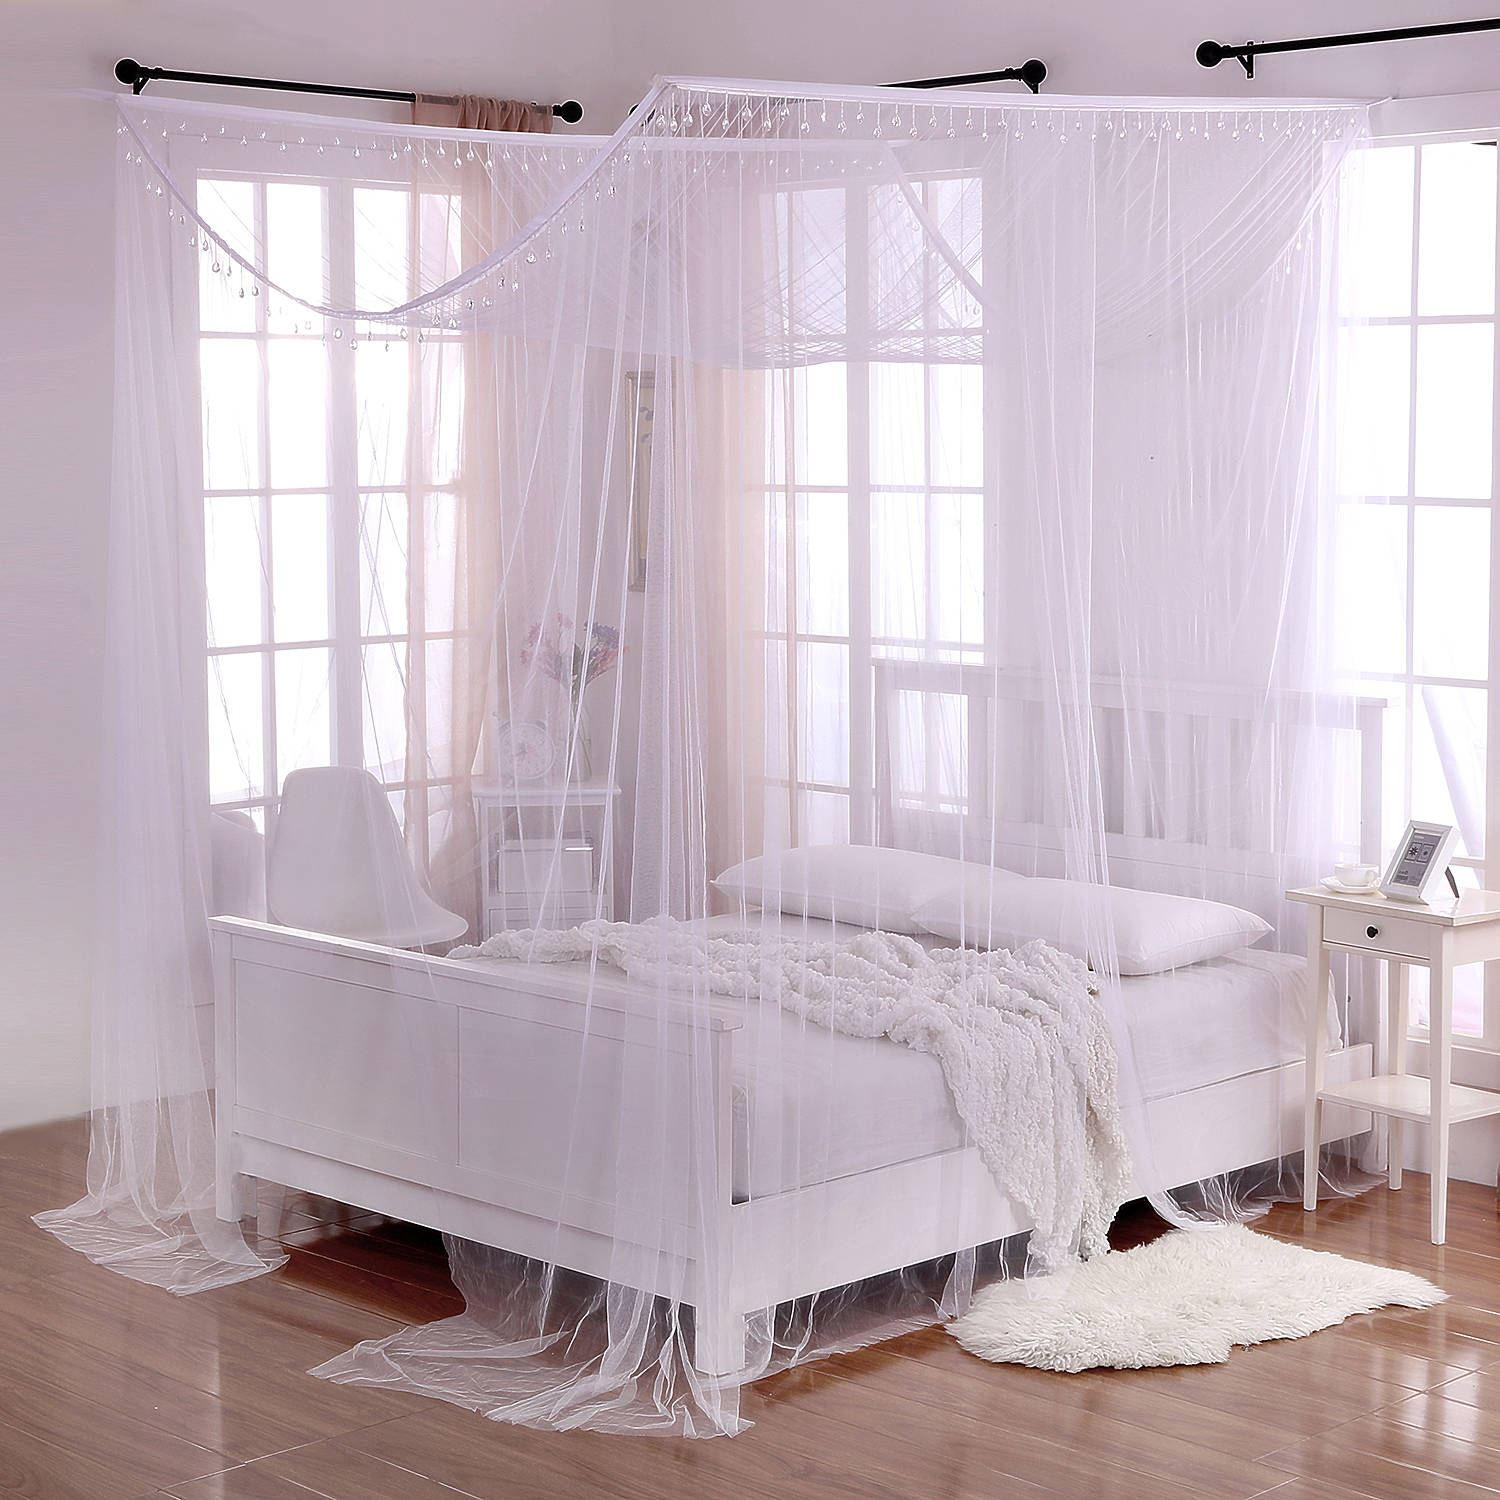 white canopy bed palace 4 post bed sheer mosquito net panel canopy 31453